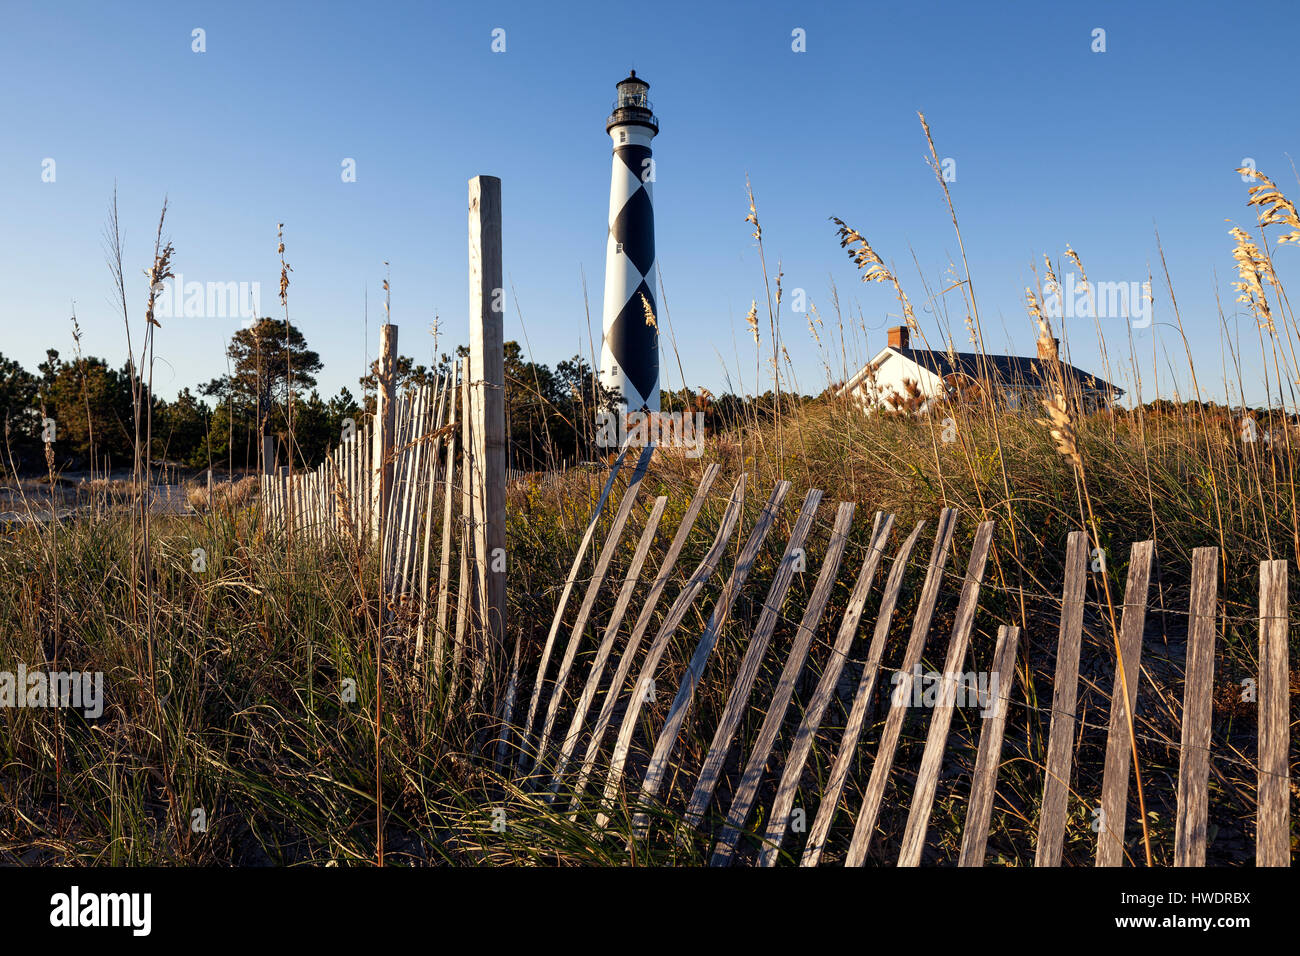 NC00886-00....NORTH CAROLINA -  Cape Lookout Lighthouse on the South Core Banks in Cape Lookout National Seashore. - Stock Image